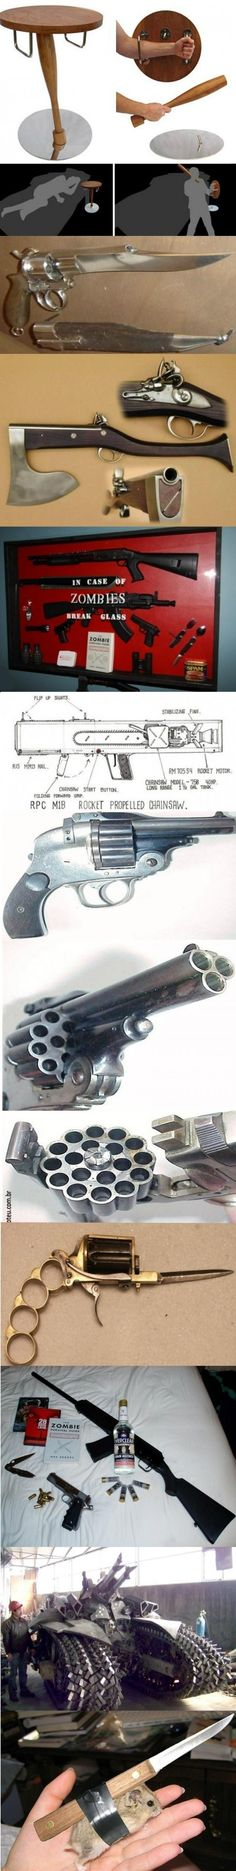 Weapons Of Choice During A Zombie Apocalypse